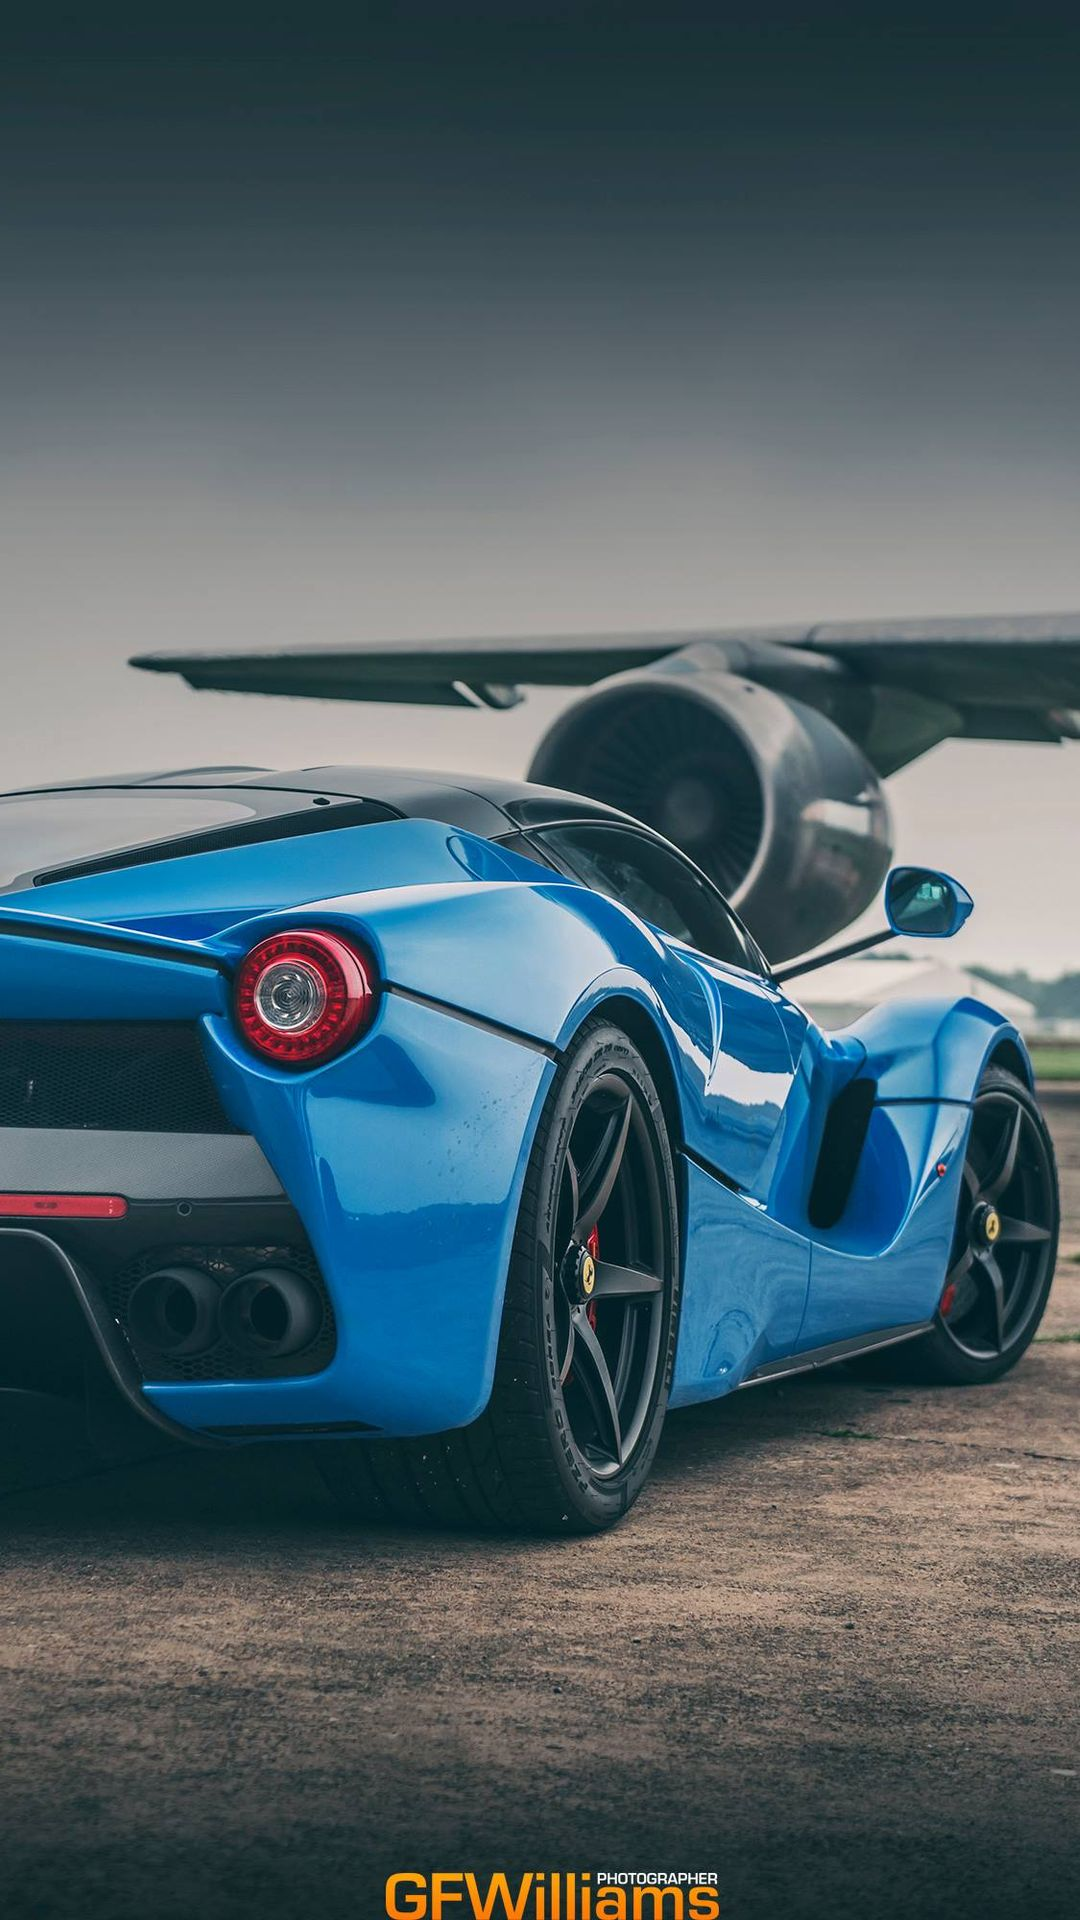 These Laferrari Wallpapers Show Off The Prancing Horse Looking